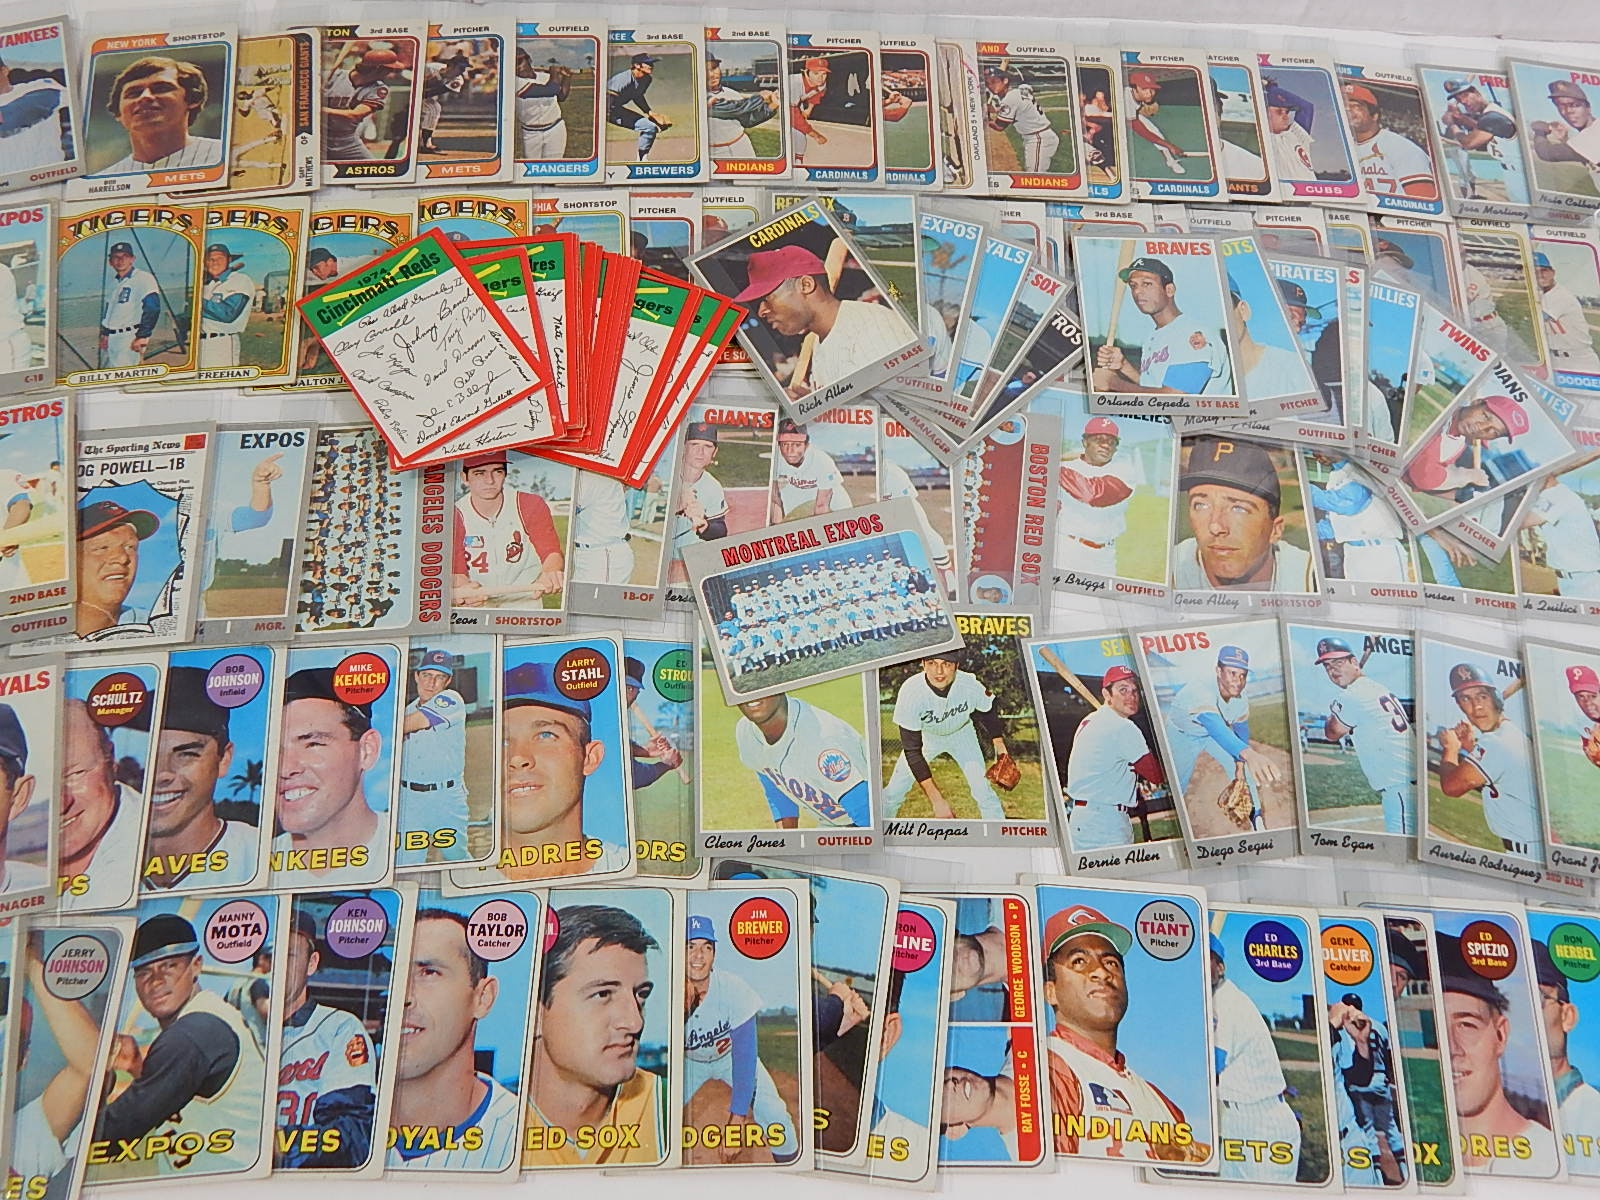 Vintage Topps Baseball Card Collection from 1969 to 1974